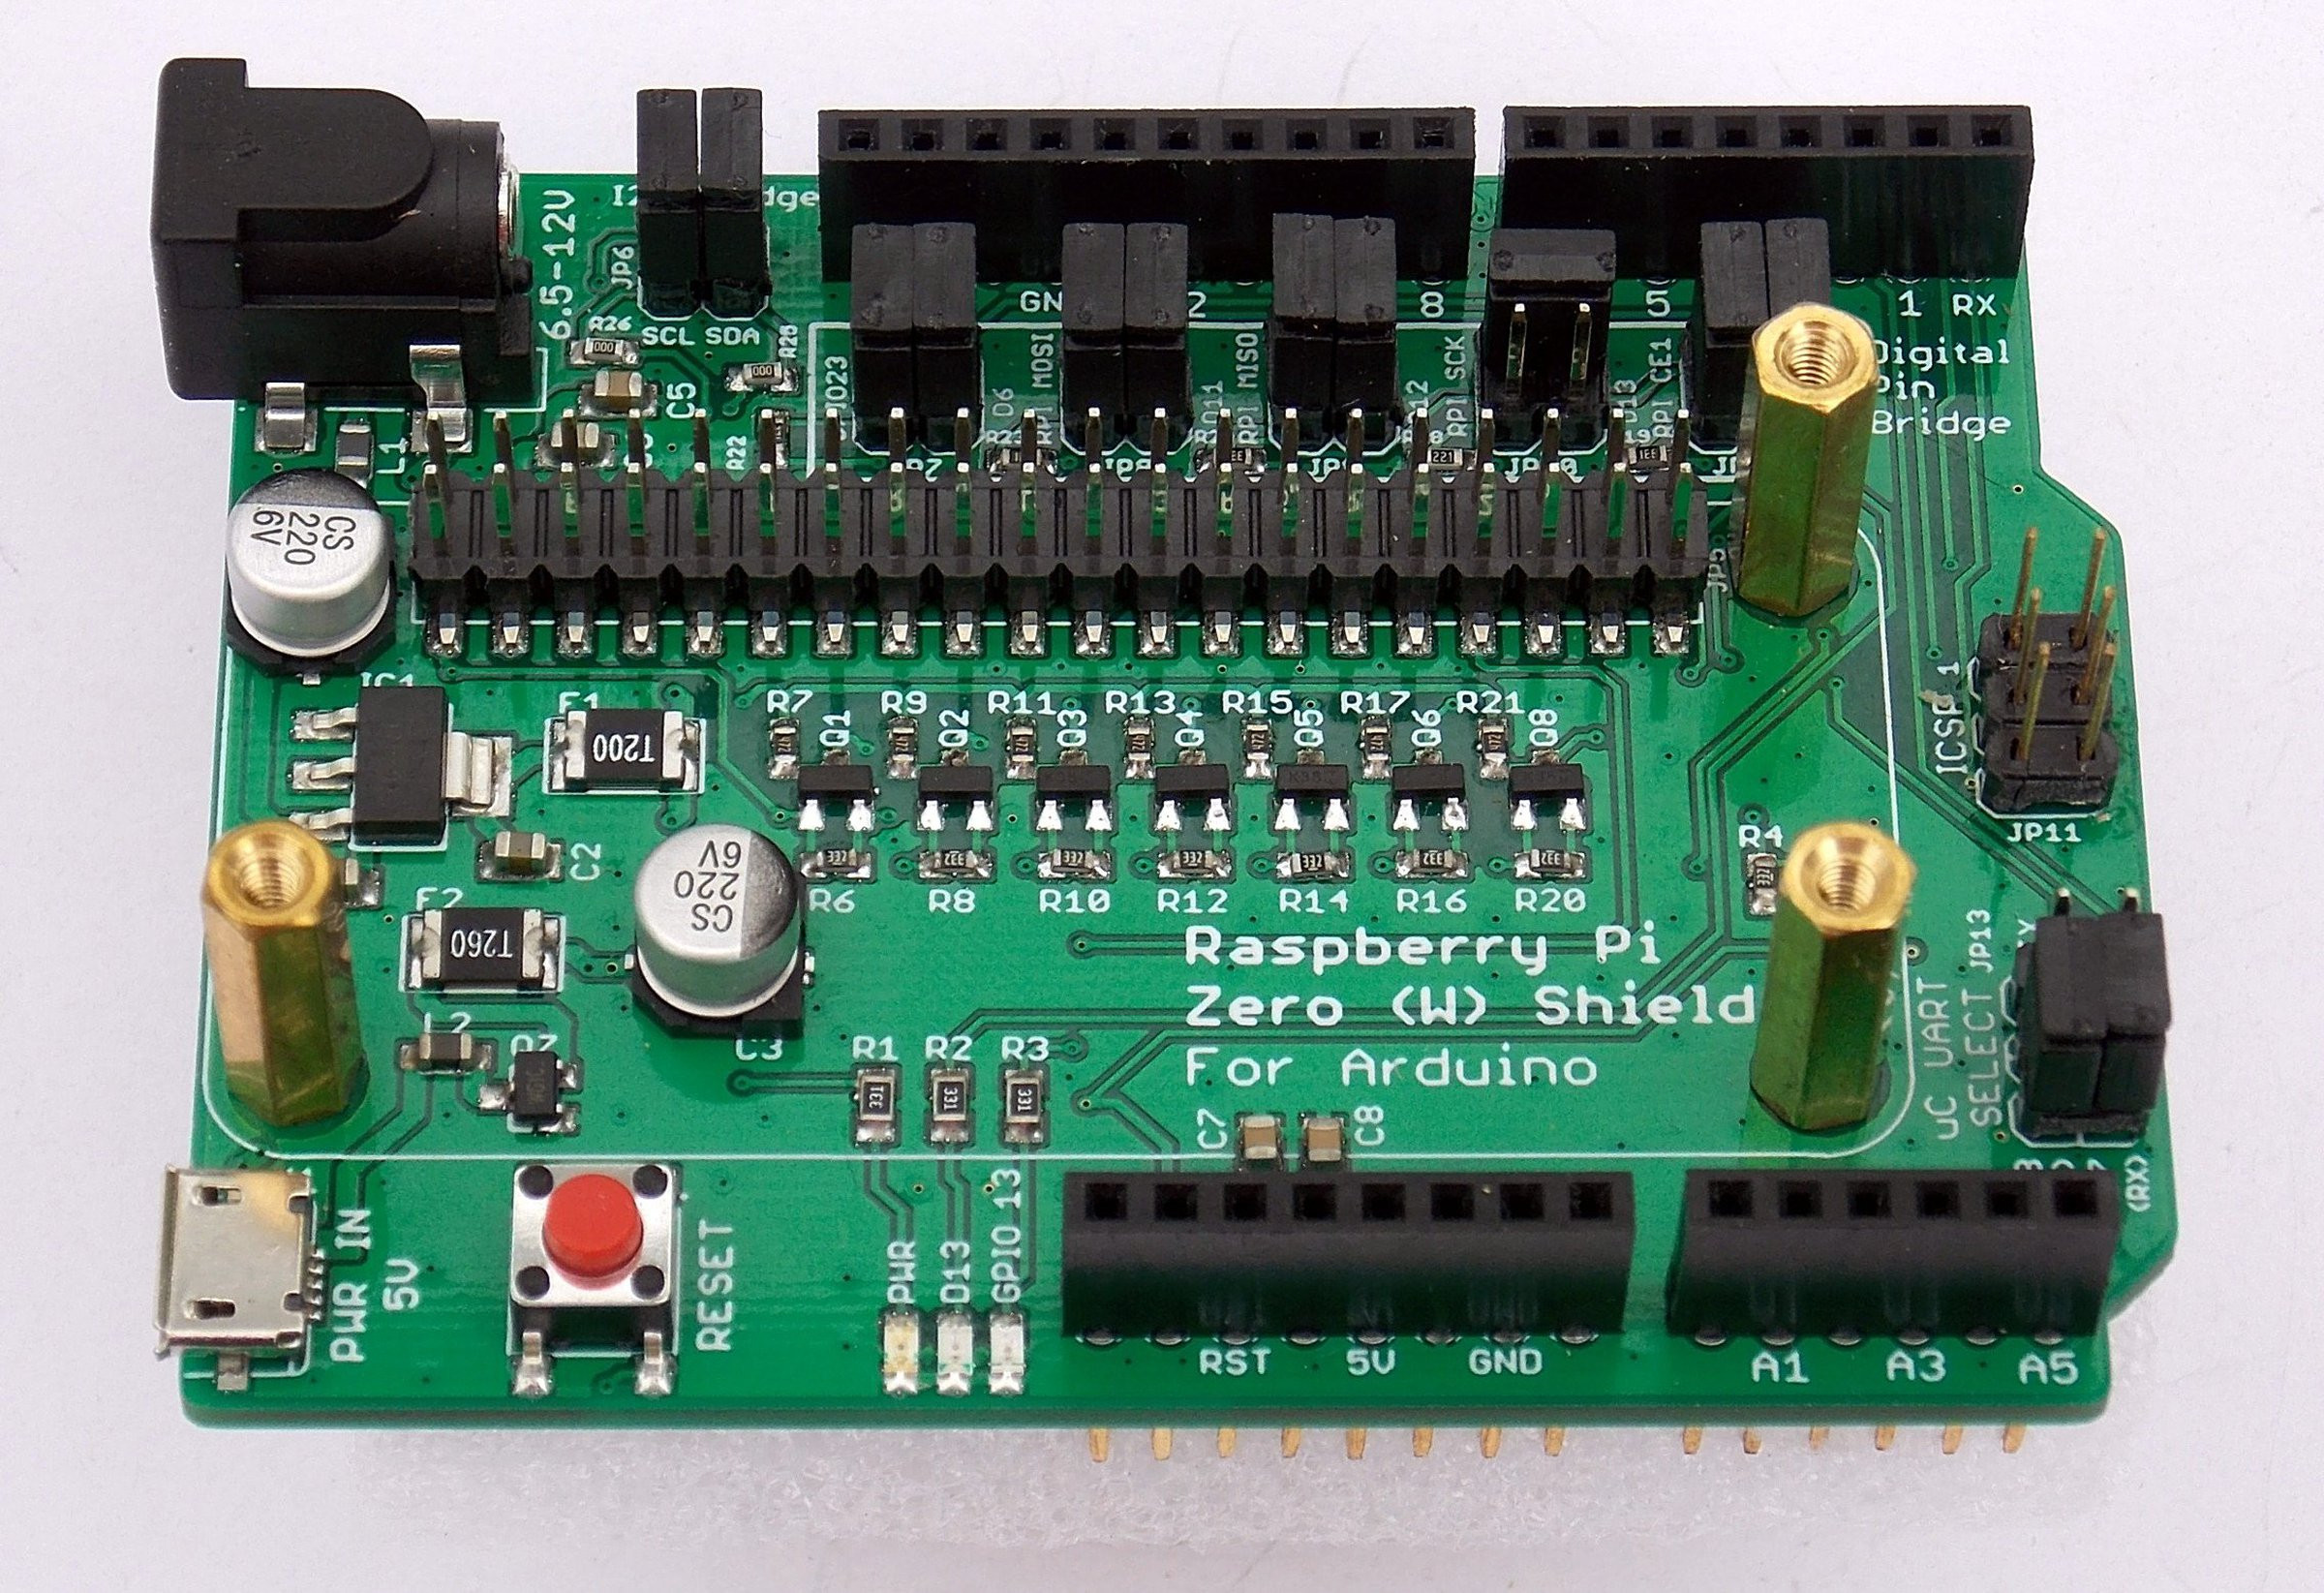 Raspberry pi zero w shield for arduino is an uno